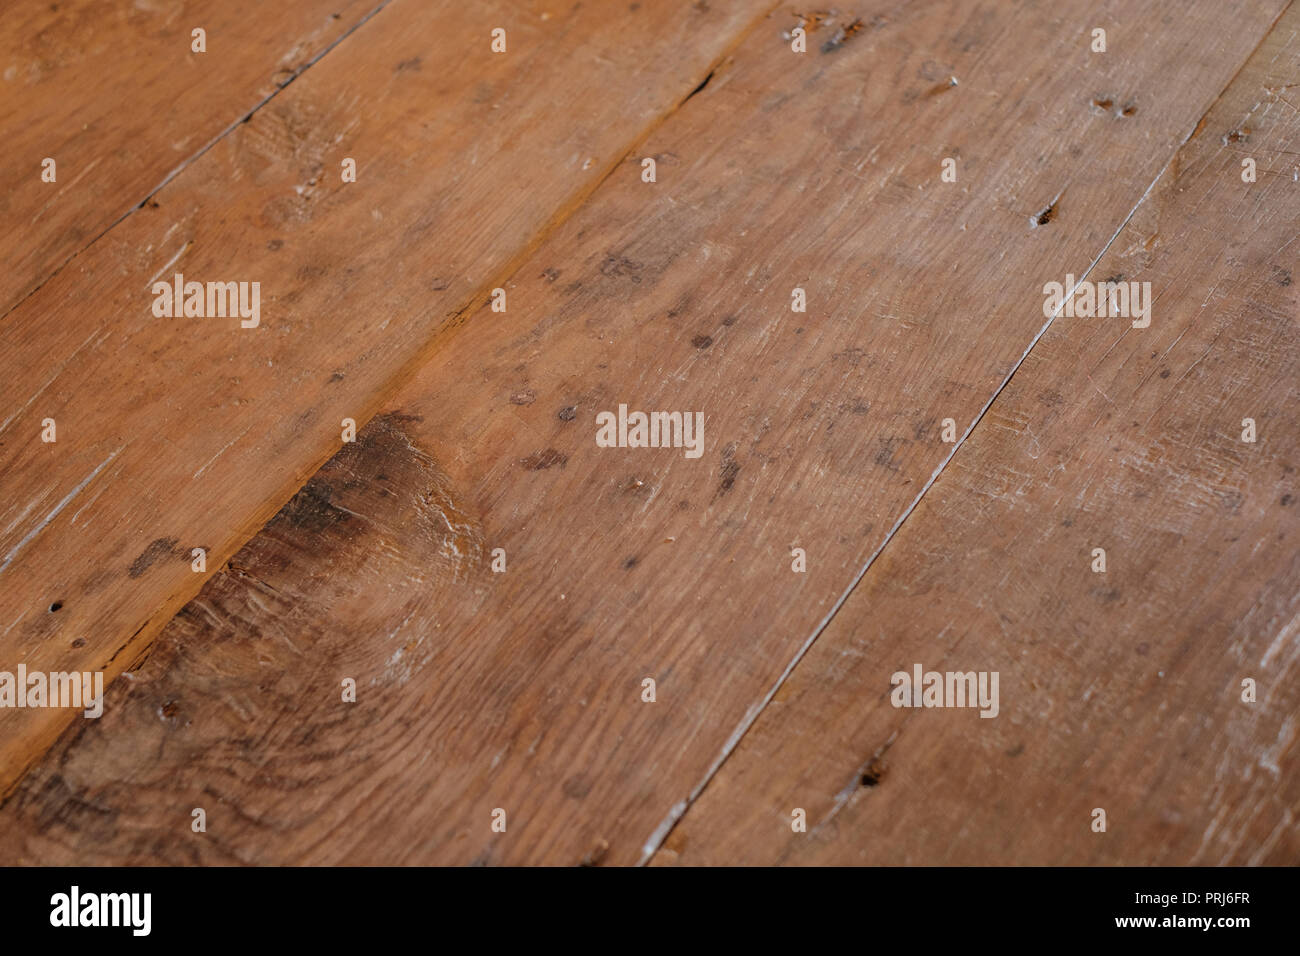 wood table detail, vintage wooden table texture - Stock Image